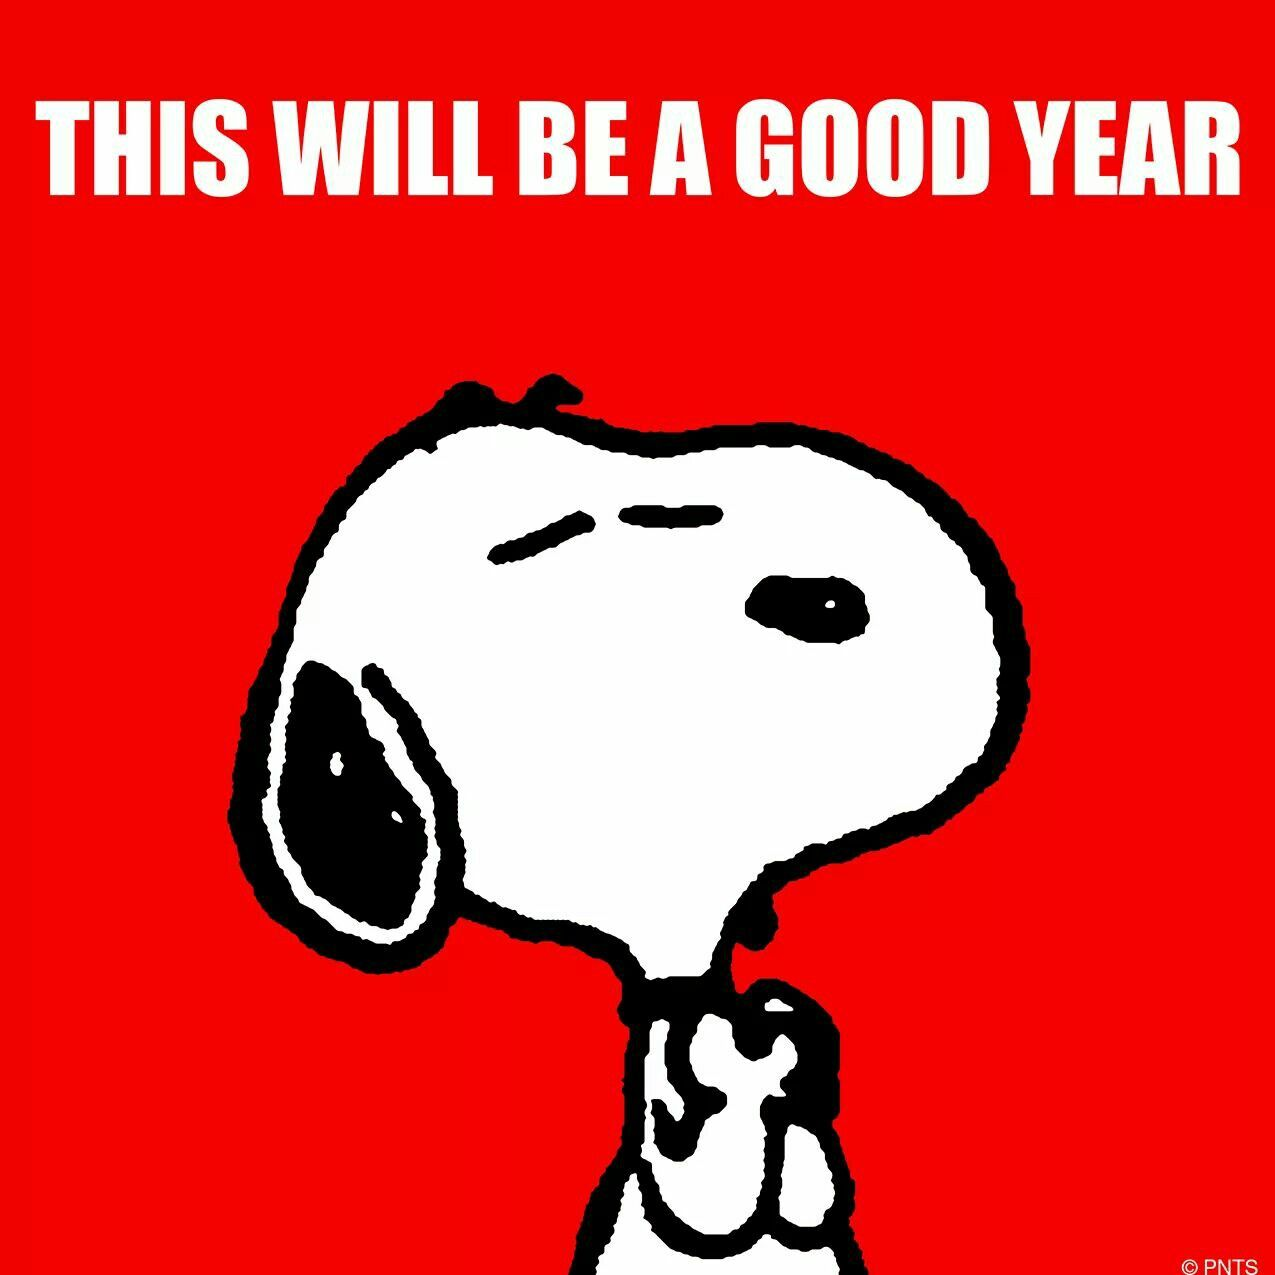 Happy New Year Charlie Brown Quotes: This Will Be A Good Year!